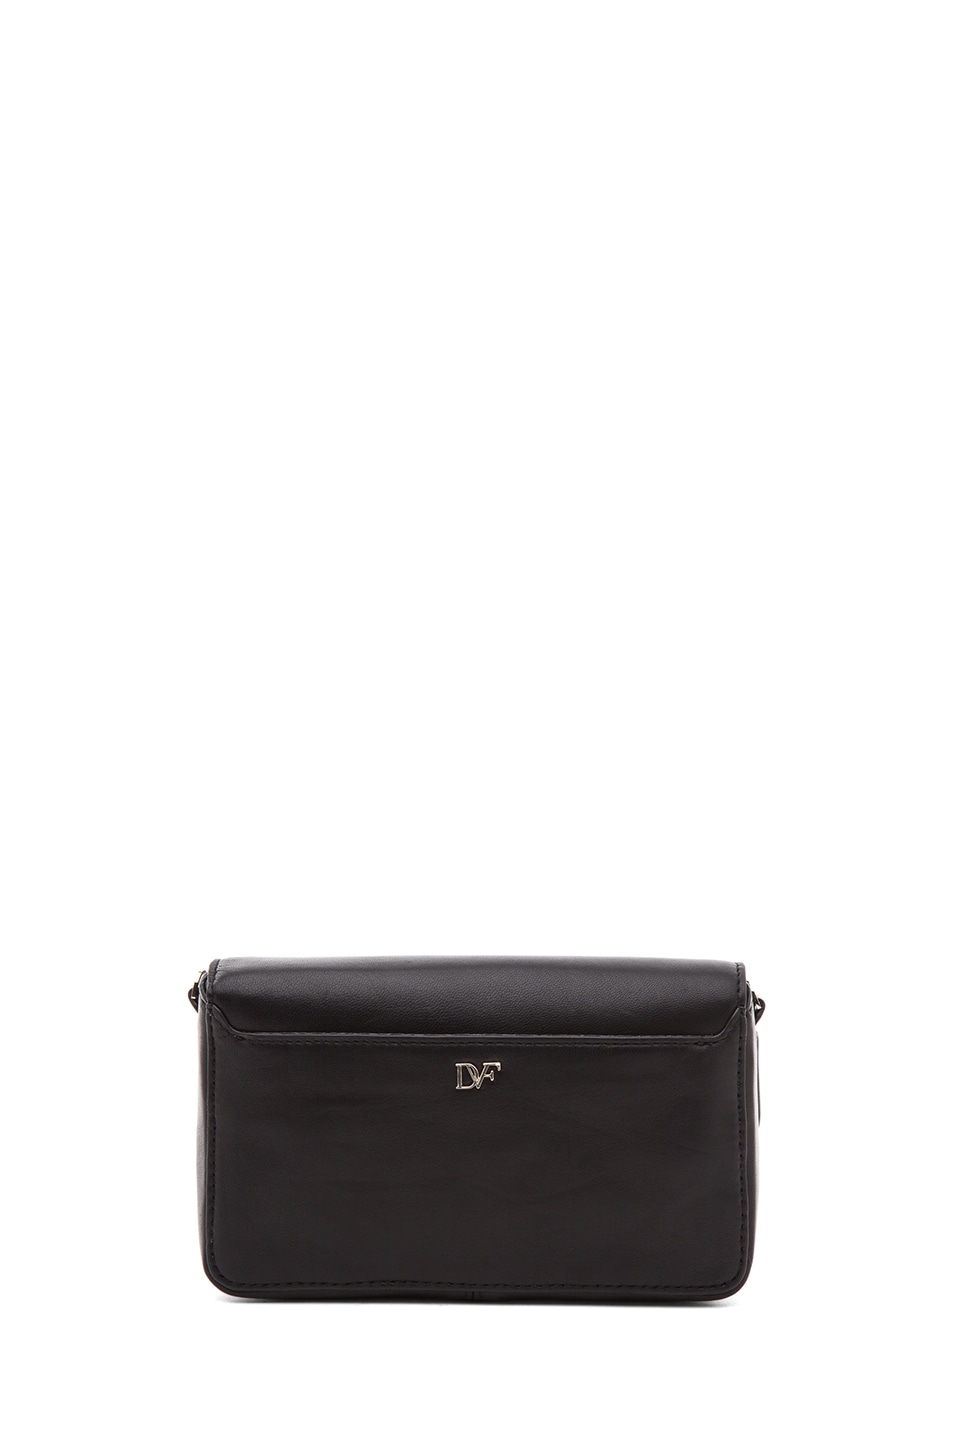 Image 2 of Diane von Furstenberg Mini Flirty Leather Crossbody in Black